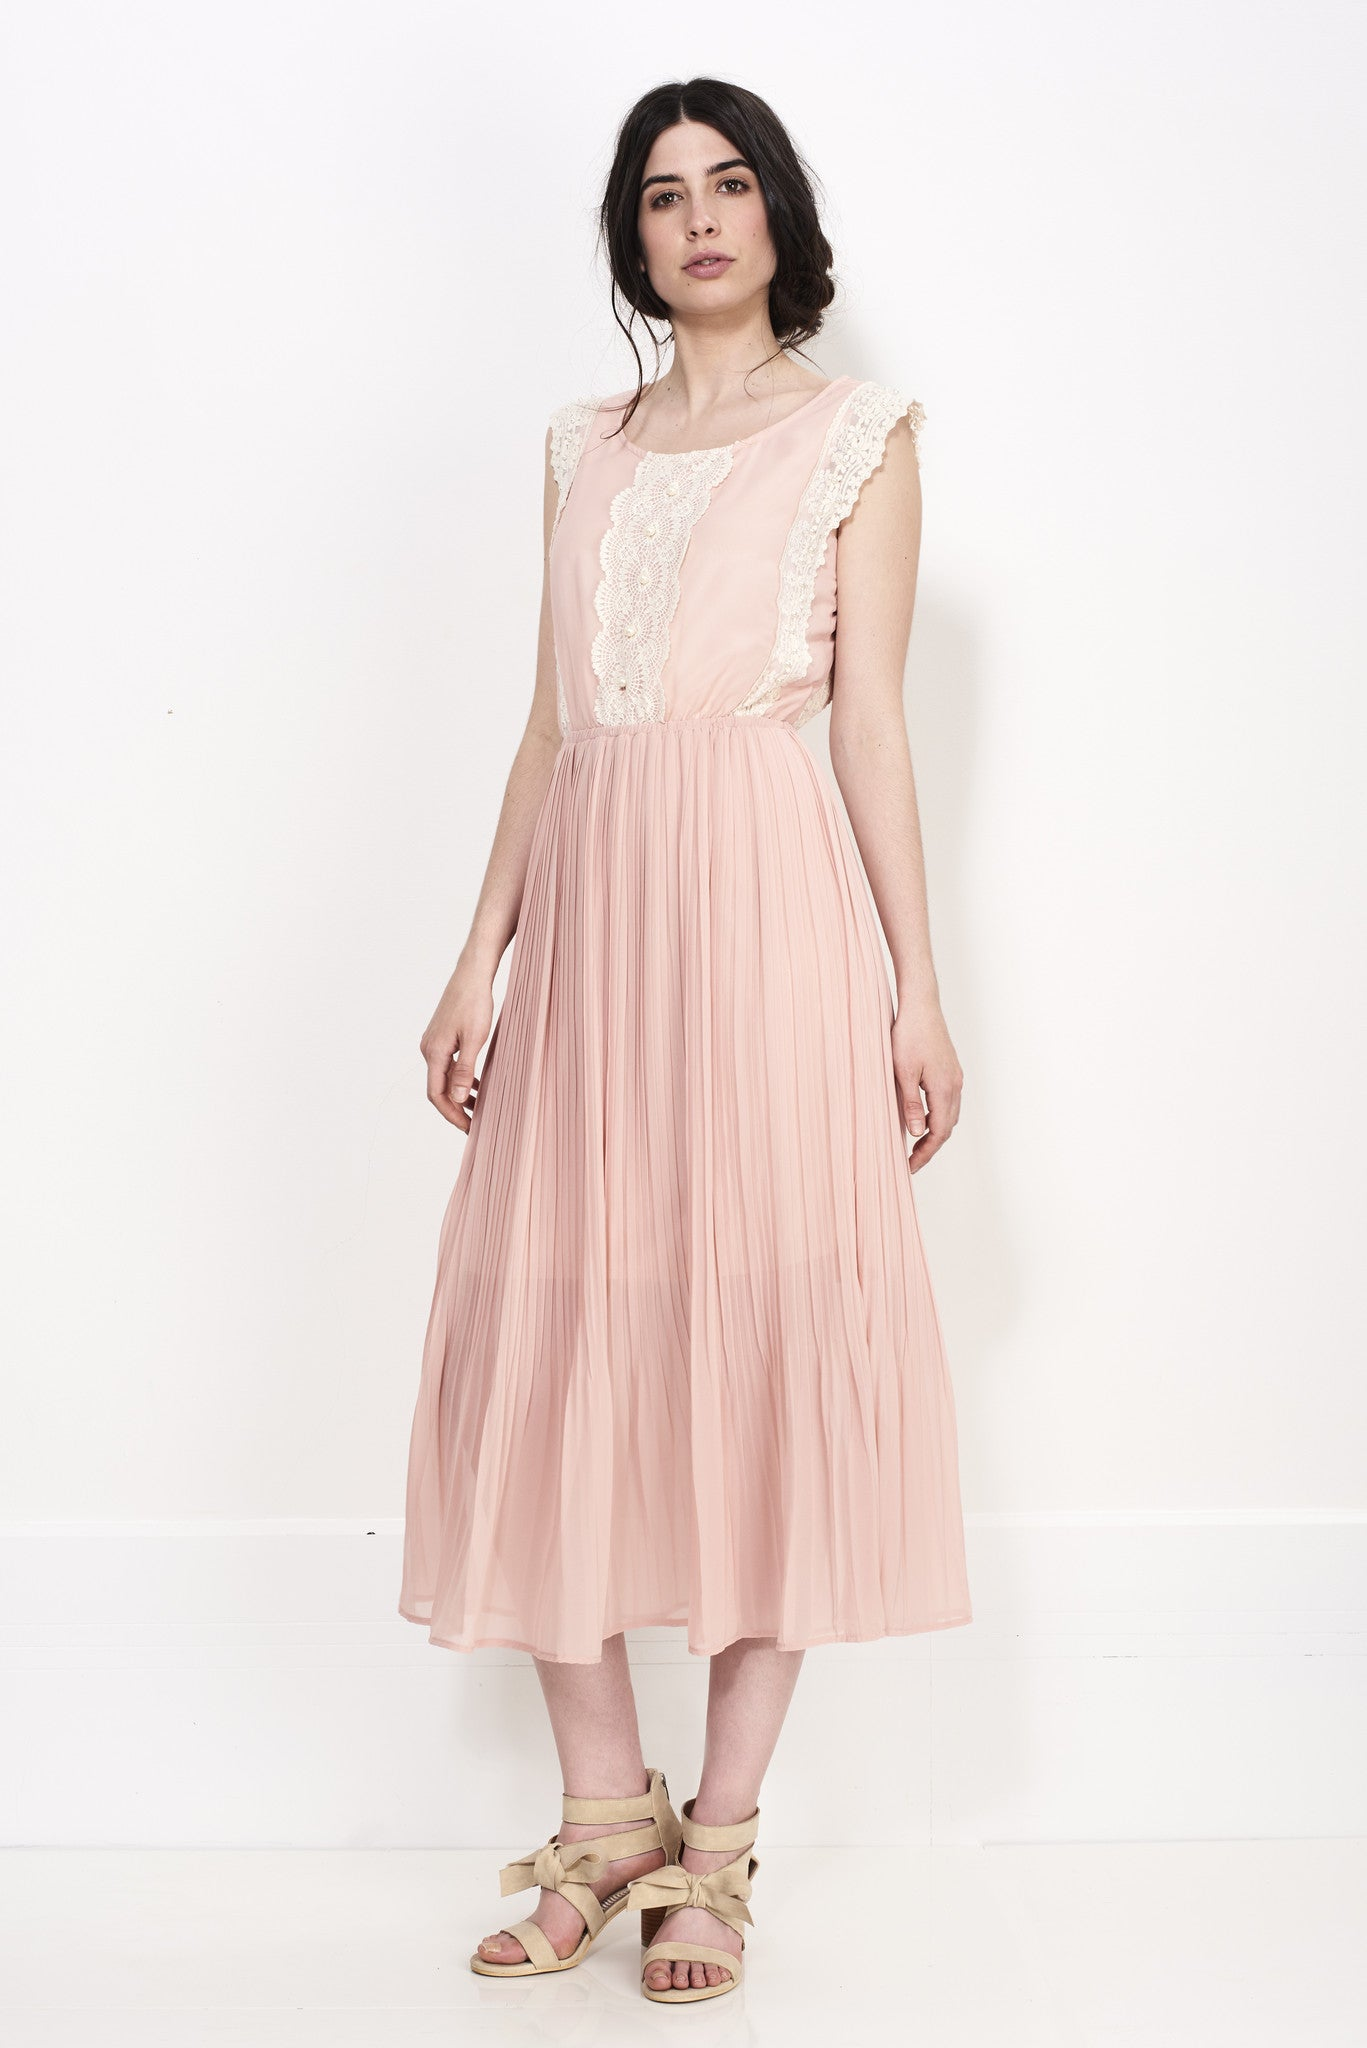 CENTER LACE MAXI DRESS - Darccy & Soma London